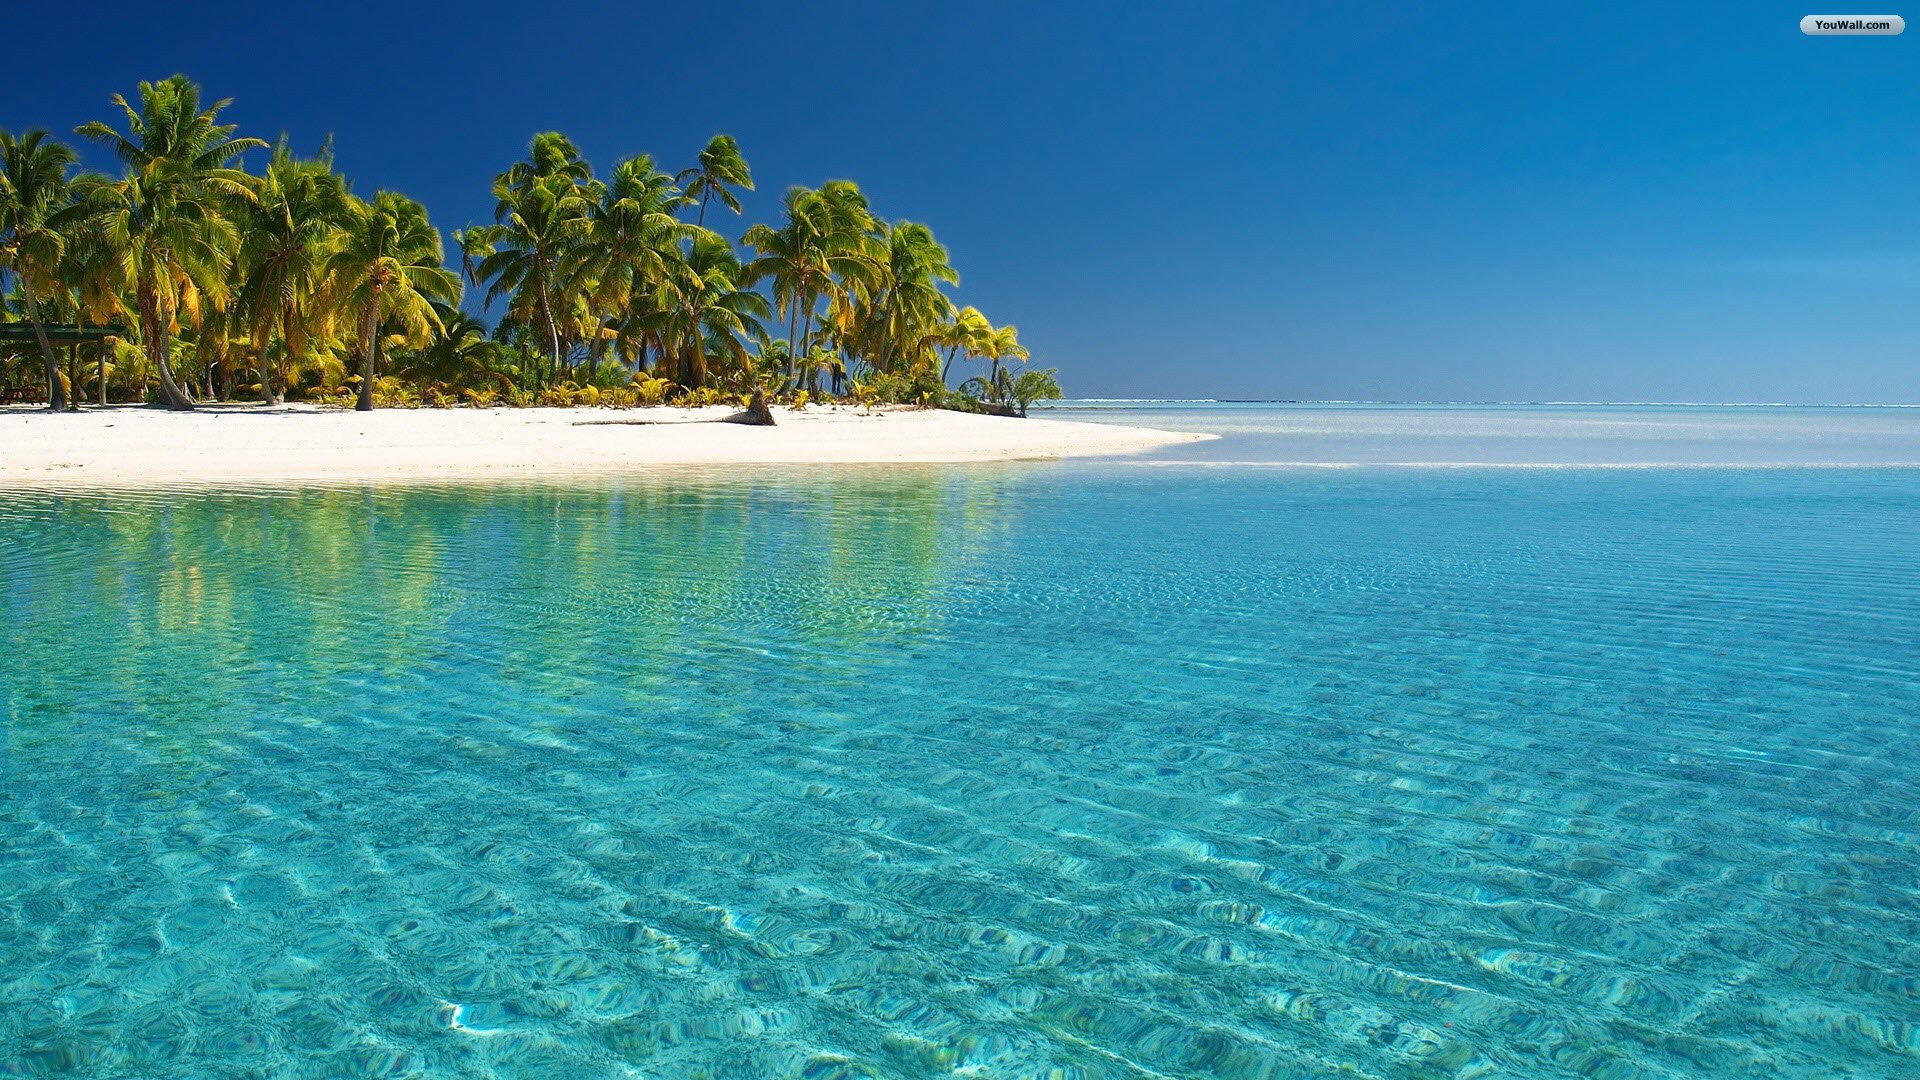 tropical beach wallpaper glass water 1920x1080jpg 1920x1080